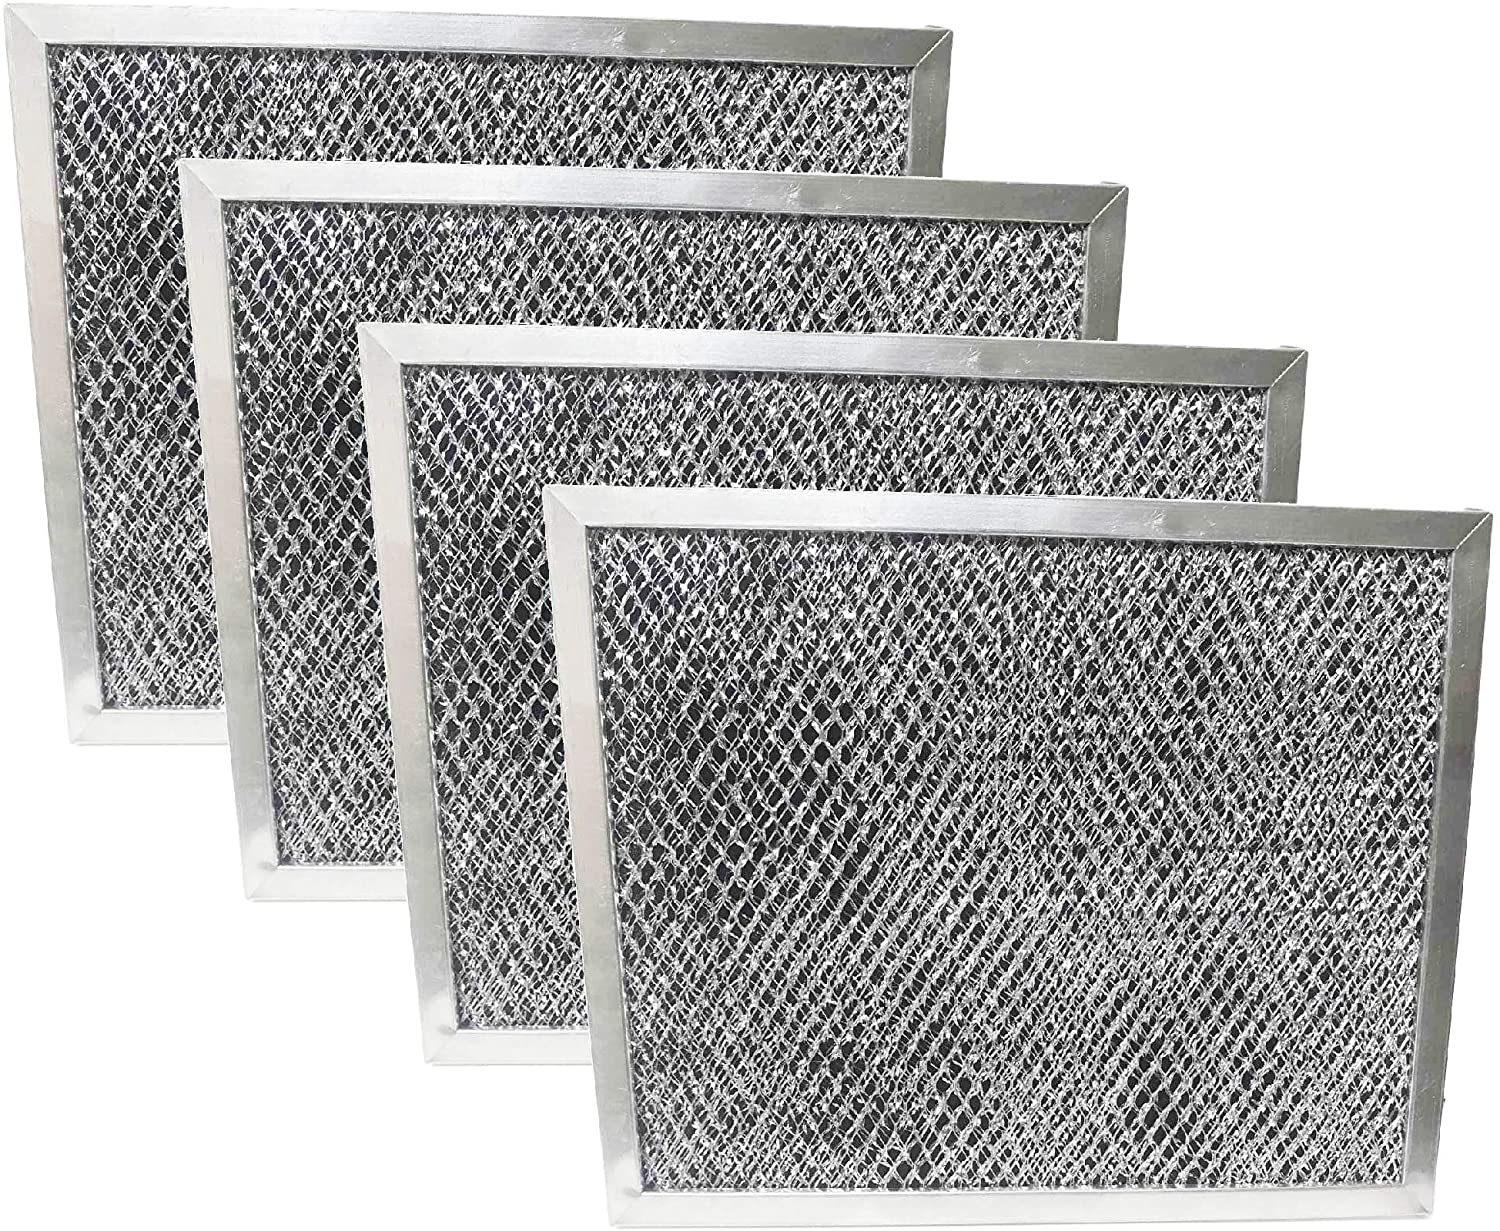 Nispira Replacement Range Hood Grease Filter with Charcoal Compatible with Broan 97007696, S97007696, 6105C, 1172266, 41F. A set of 4 Filters